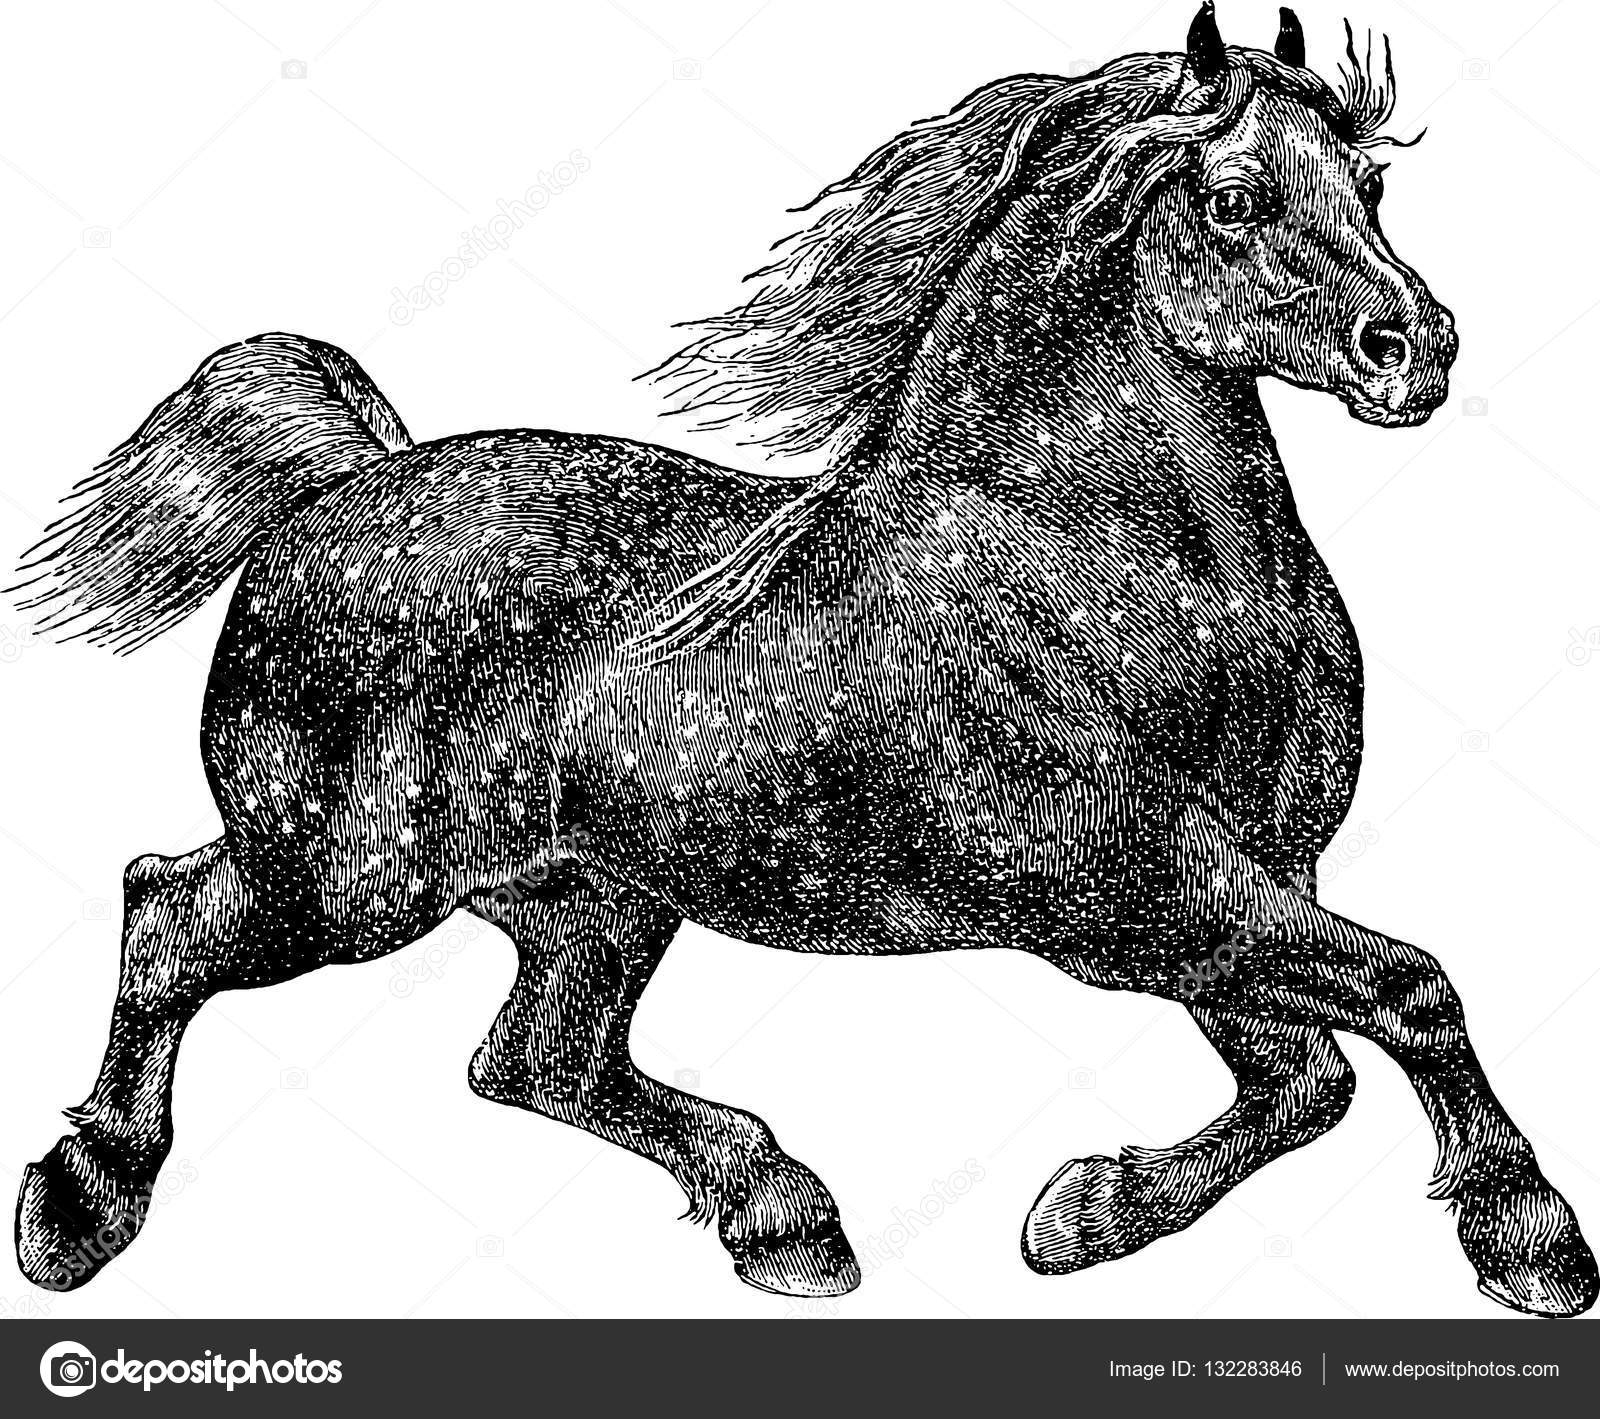 Vintage Illustration Horse Stock Photo C Unorobus Gmail Com 132283846